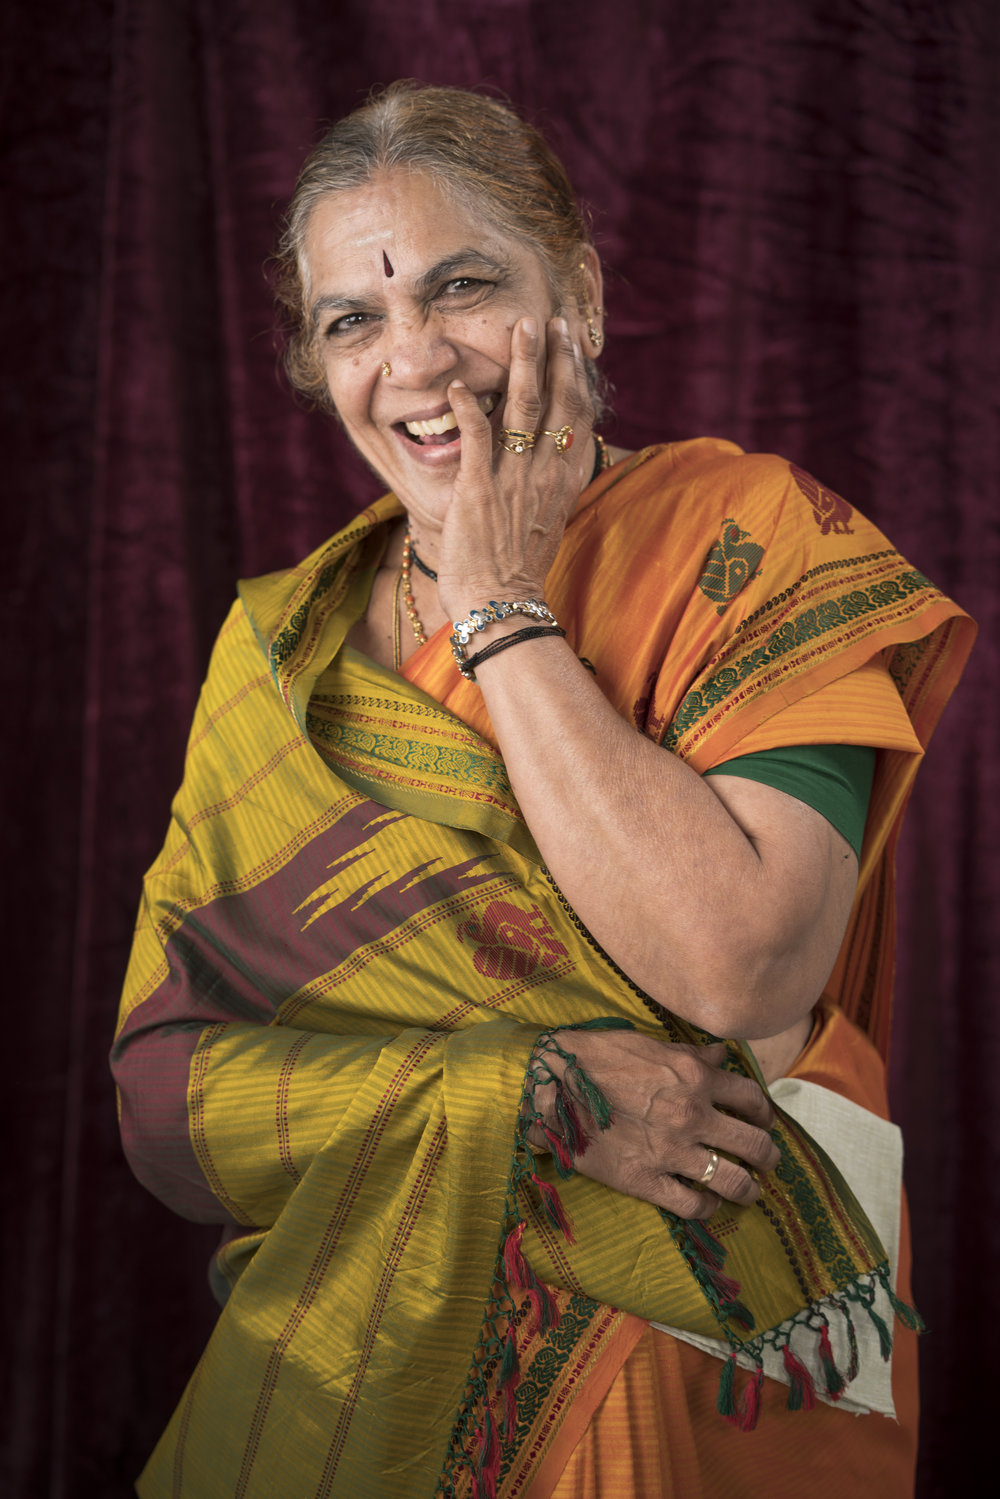 """These days Mrs Narasimhan enjoys doll-making, knitting and stitching in her free time but ask her if she'd like to work again? """"I'd drop everything and go right back,"""" she exclaims."""